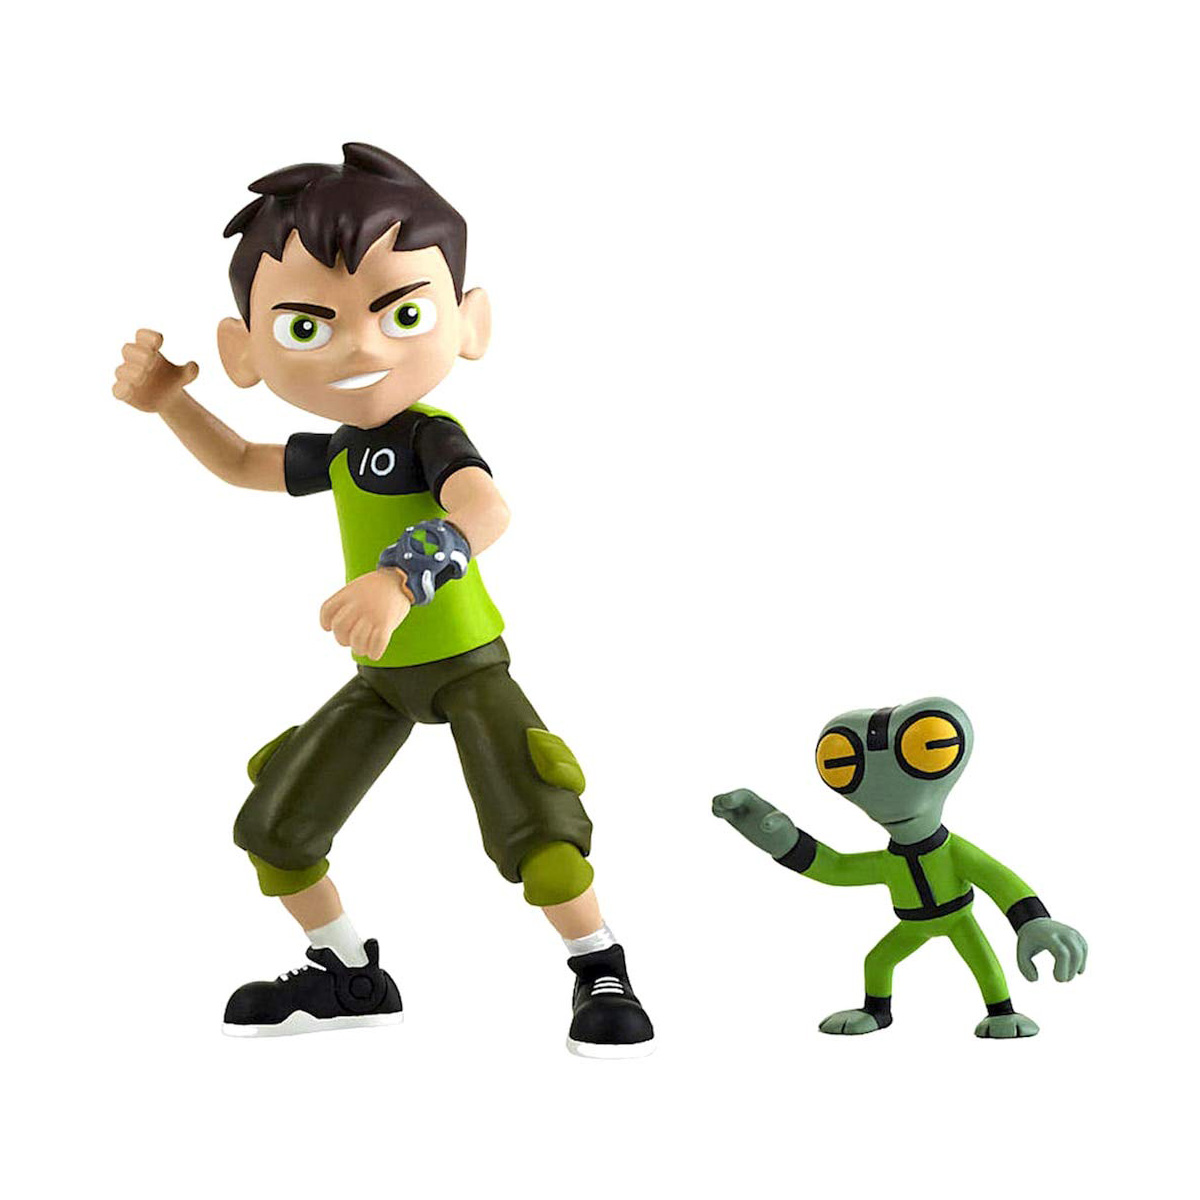 Set Figurine Ben 10 - Ben Tennyson si Grey Matter